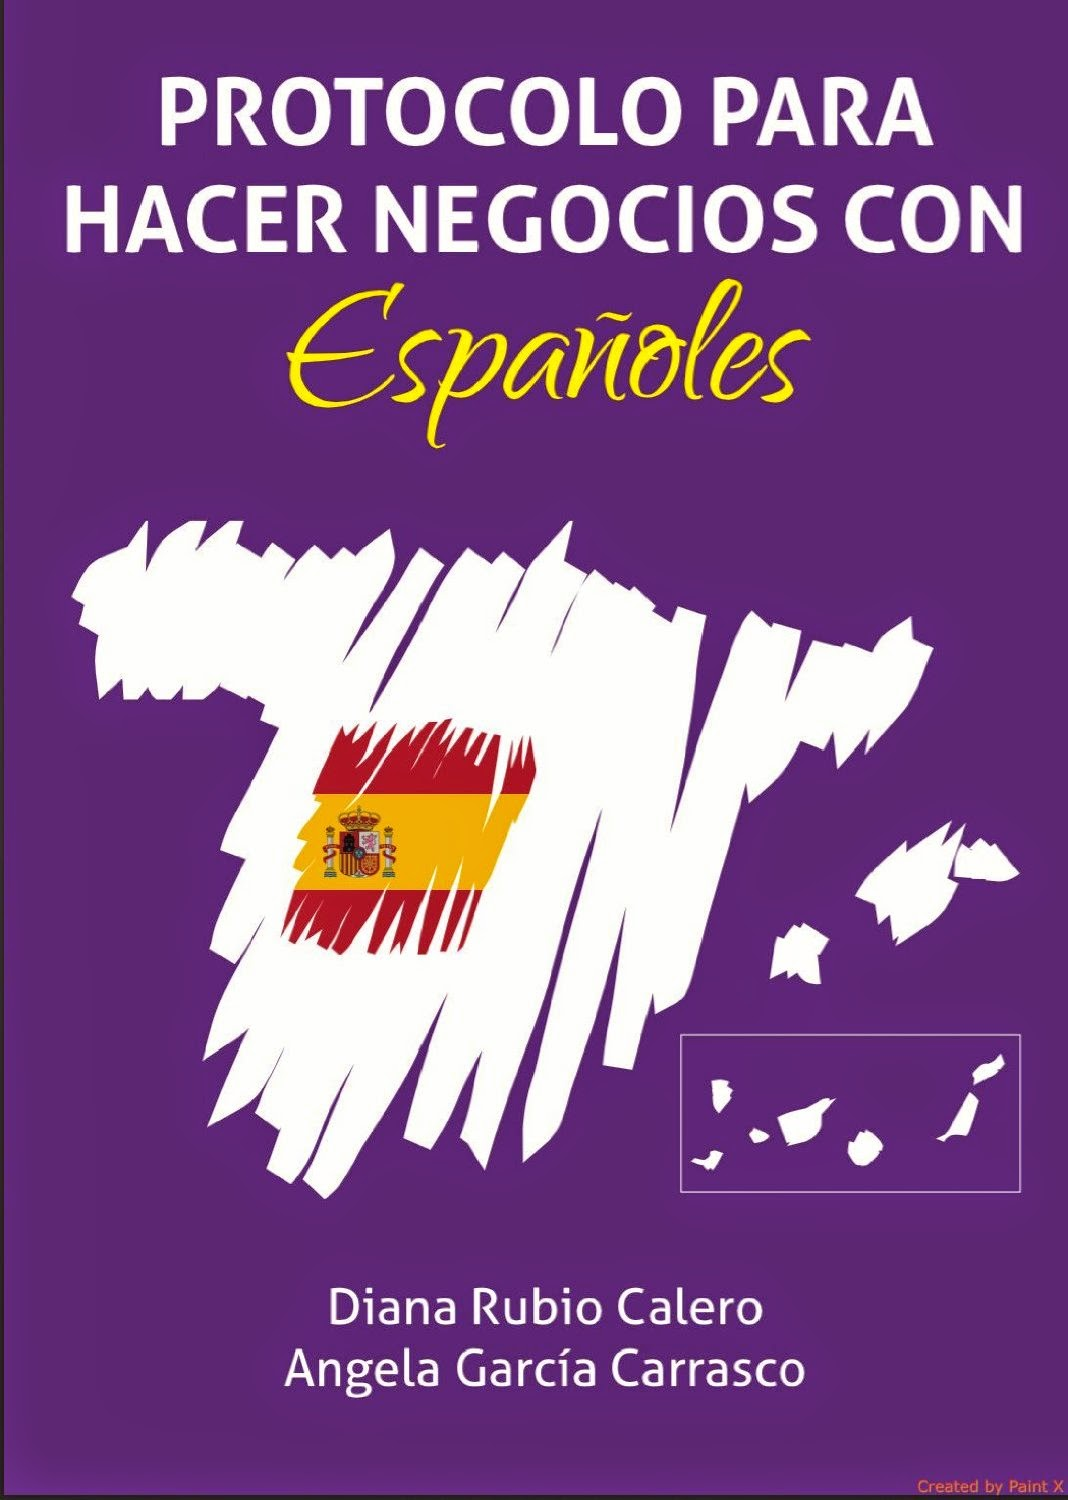 Protocol to do business with spaniards, por Diana Rubio y Ángela García (spanish & english version)